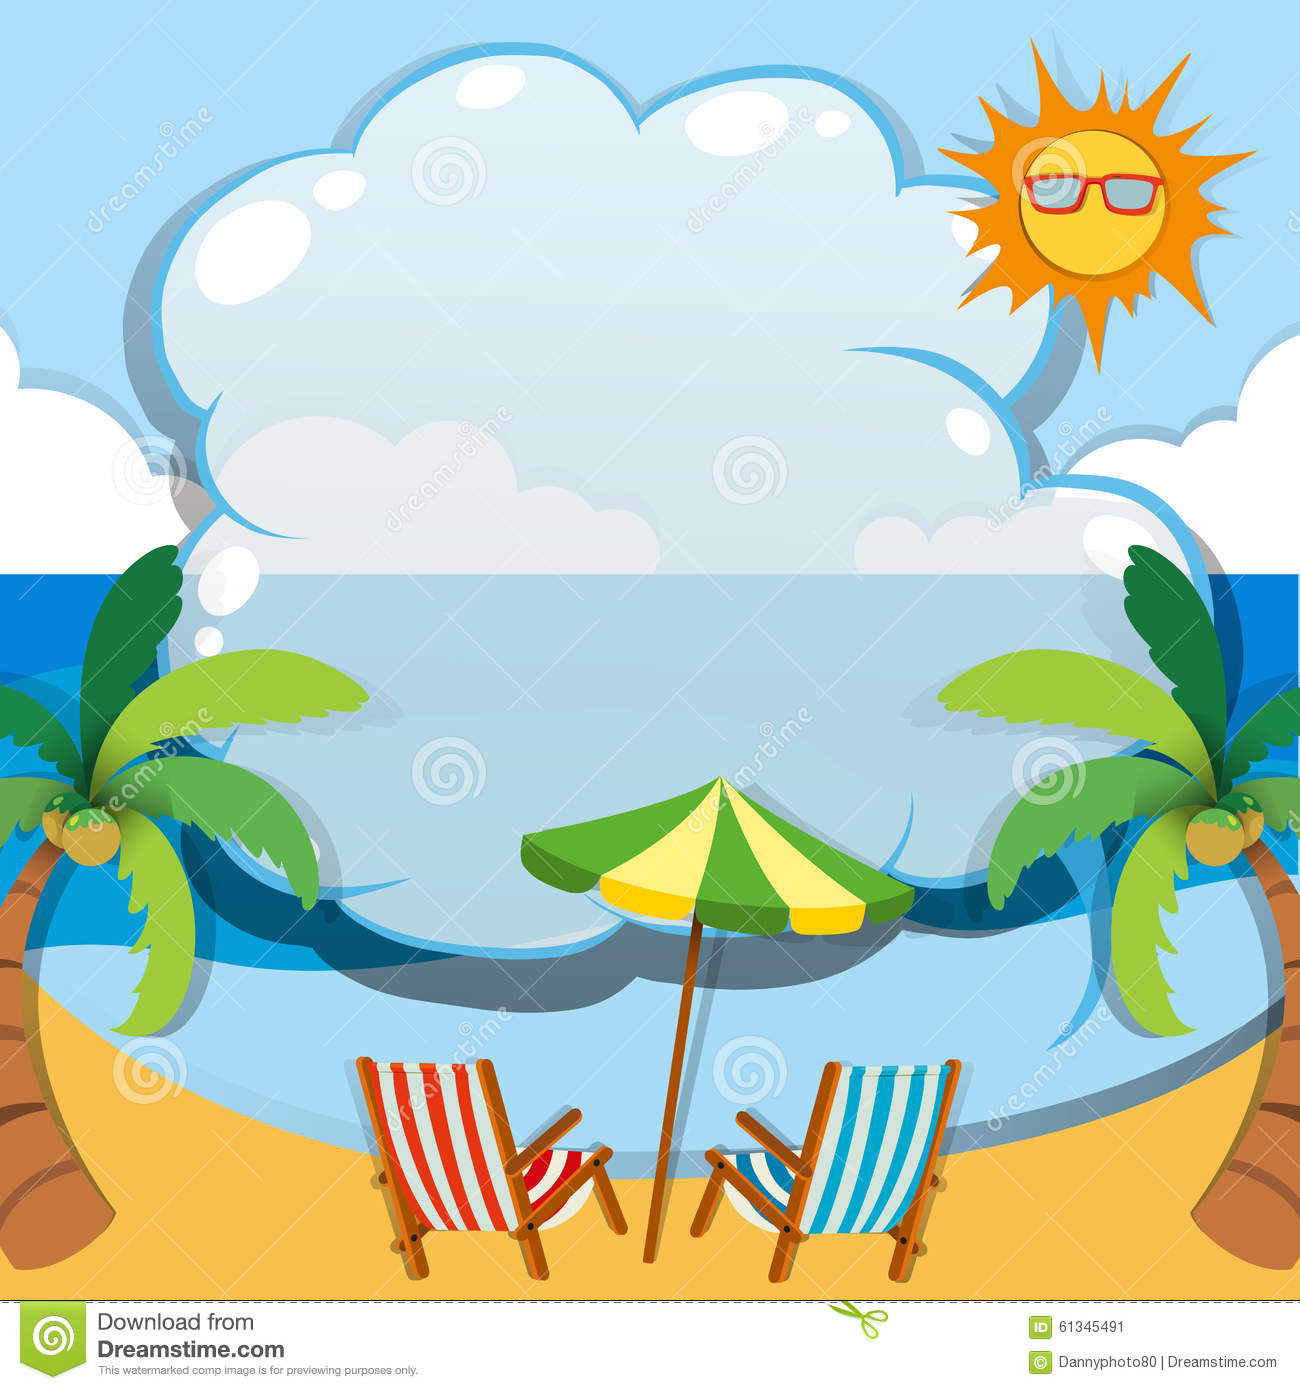 border design with summer theme stock vector